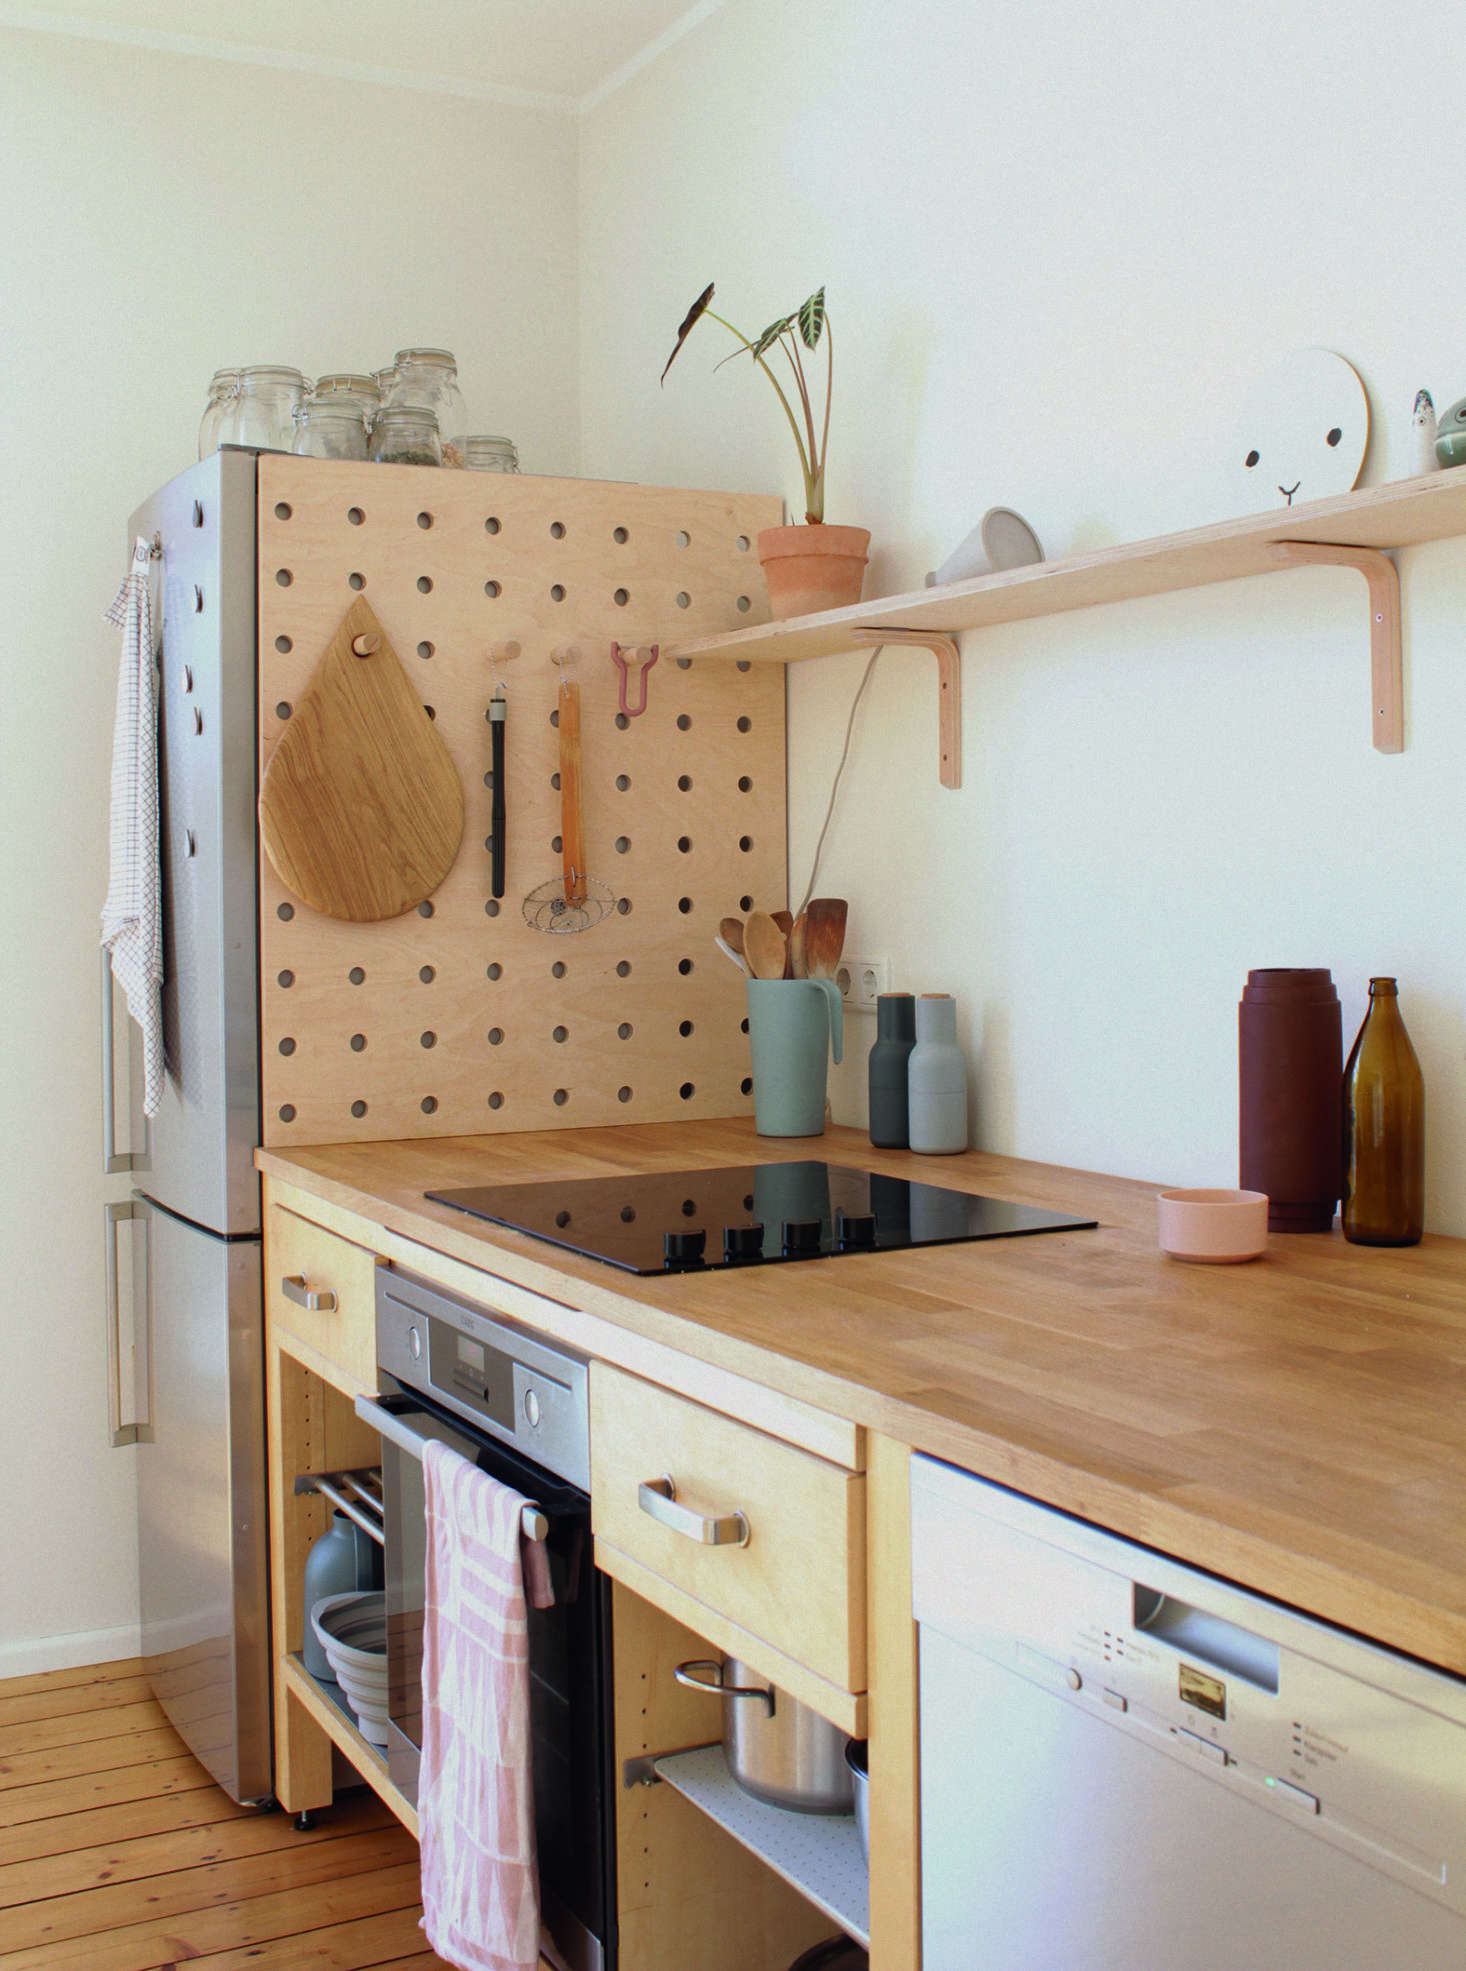 In the German kitchen of illustrator and graphic designer Swantje Hindrichsen,a pegboard hides the gap behind the fridge, which wasn't deep enough to meet the wall. See more inKitchen of the Week: An Artful Kitchen Created from Reclaimed Ikea Parts, Extreme Budget Edition.